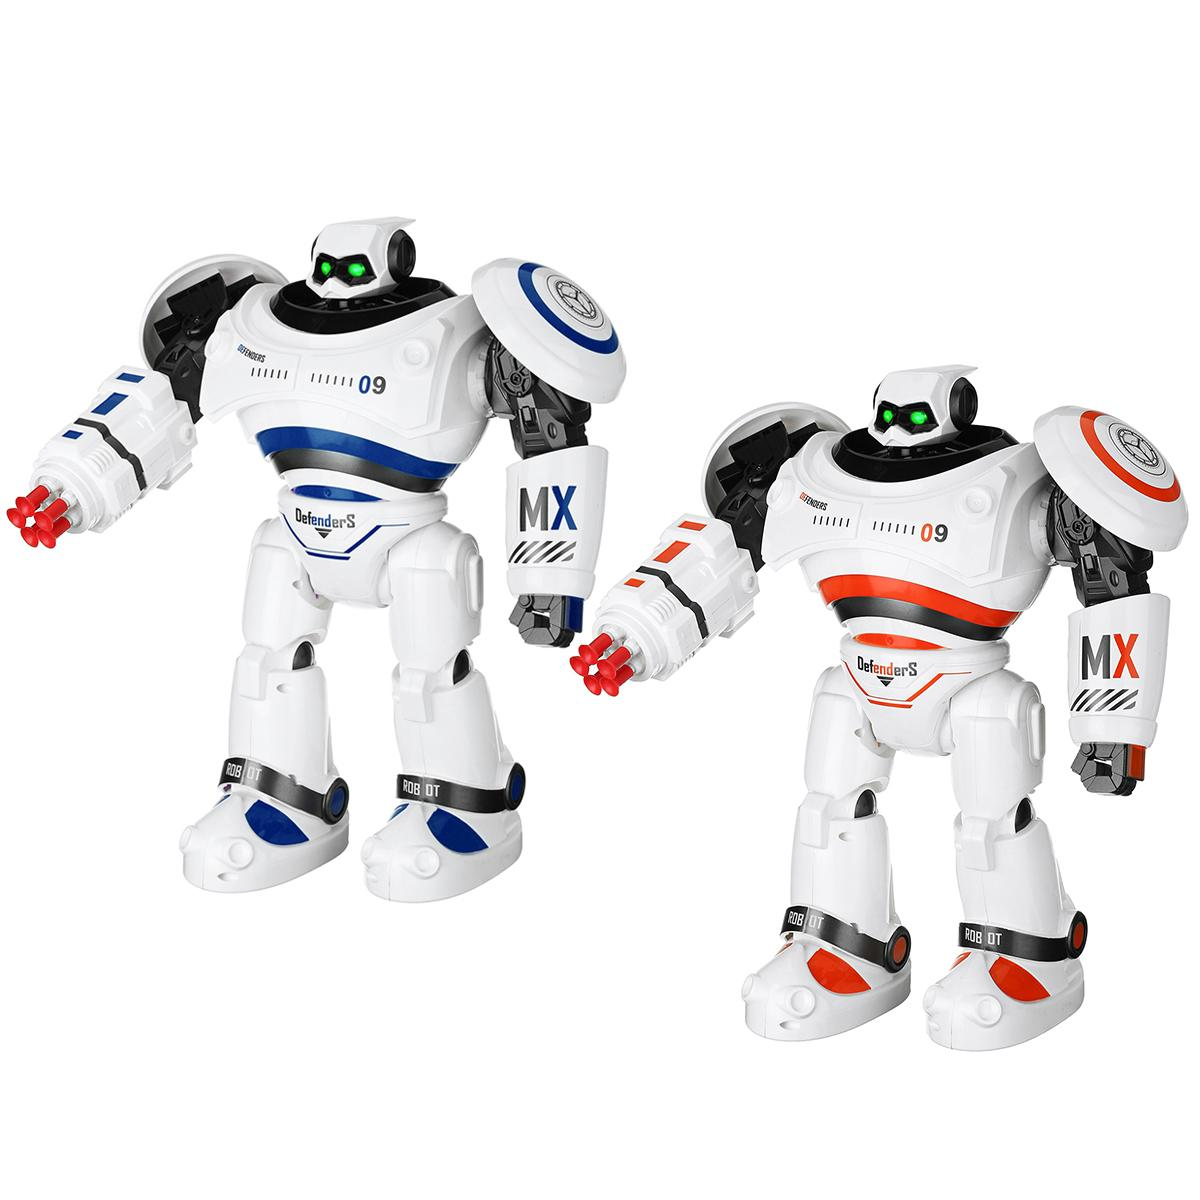 AD Polices Files Programmable Combat Robot with Remote Control for Kids 3